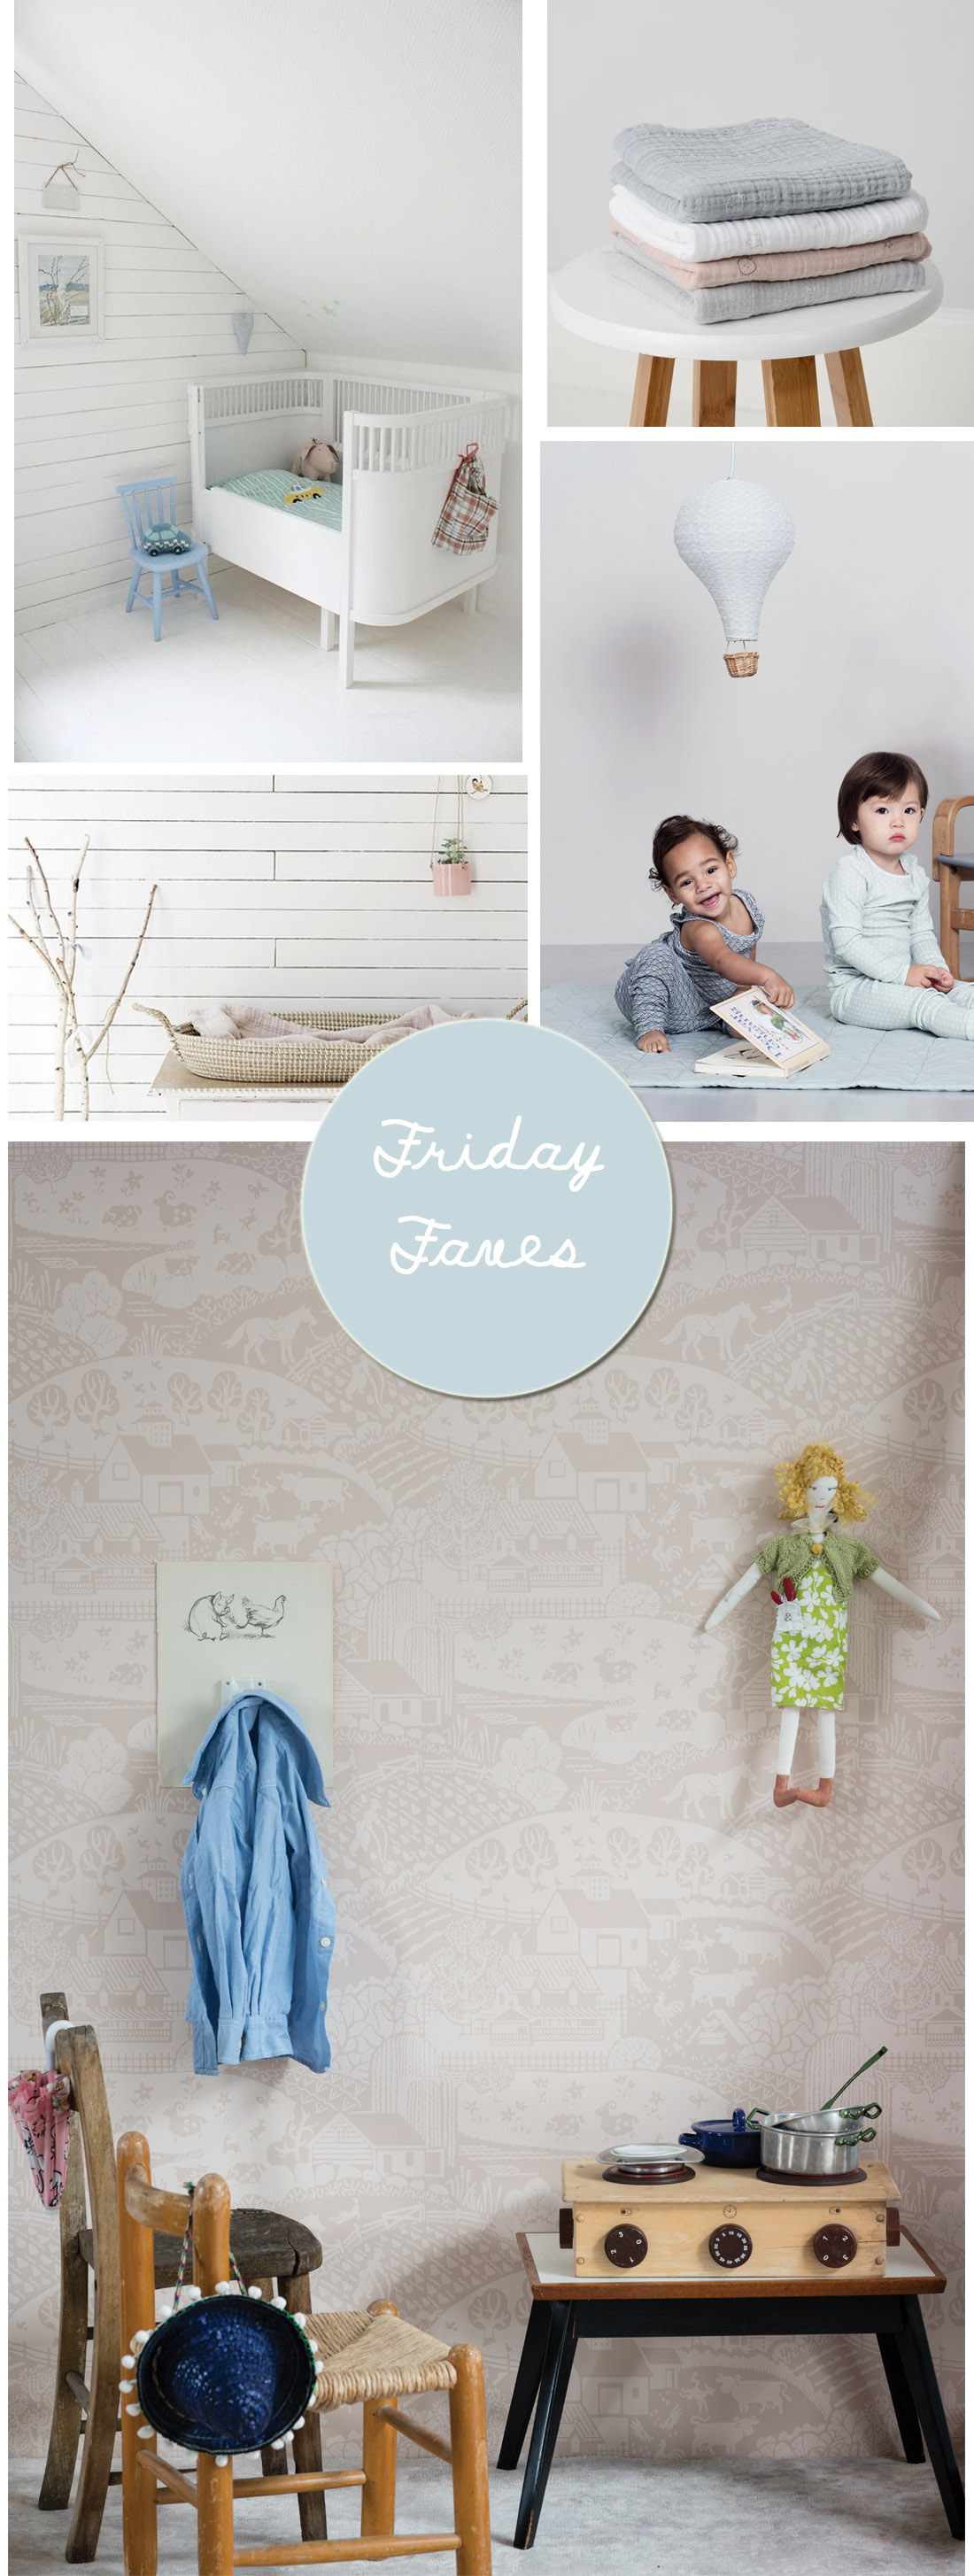 Friday faves | Nursery inspiration | Apartment Apothecary